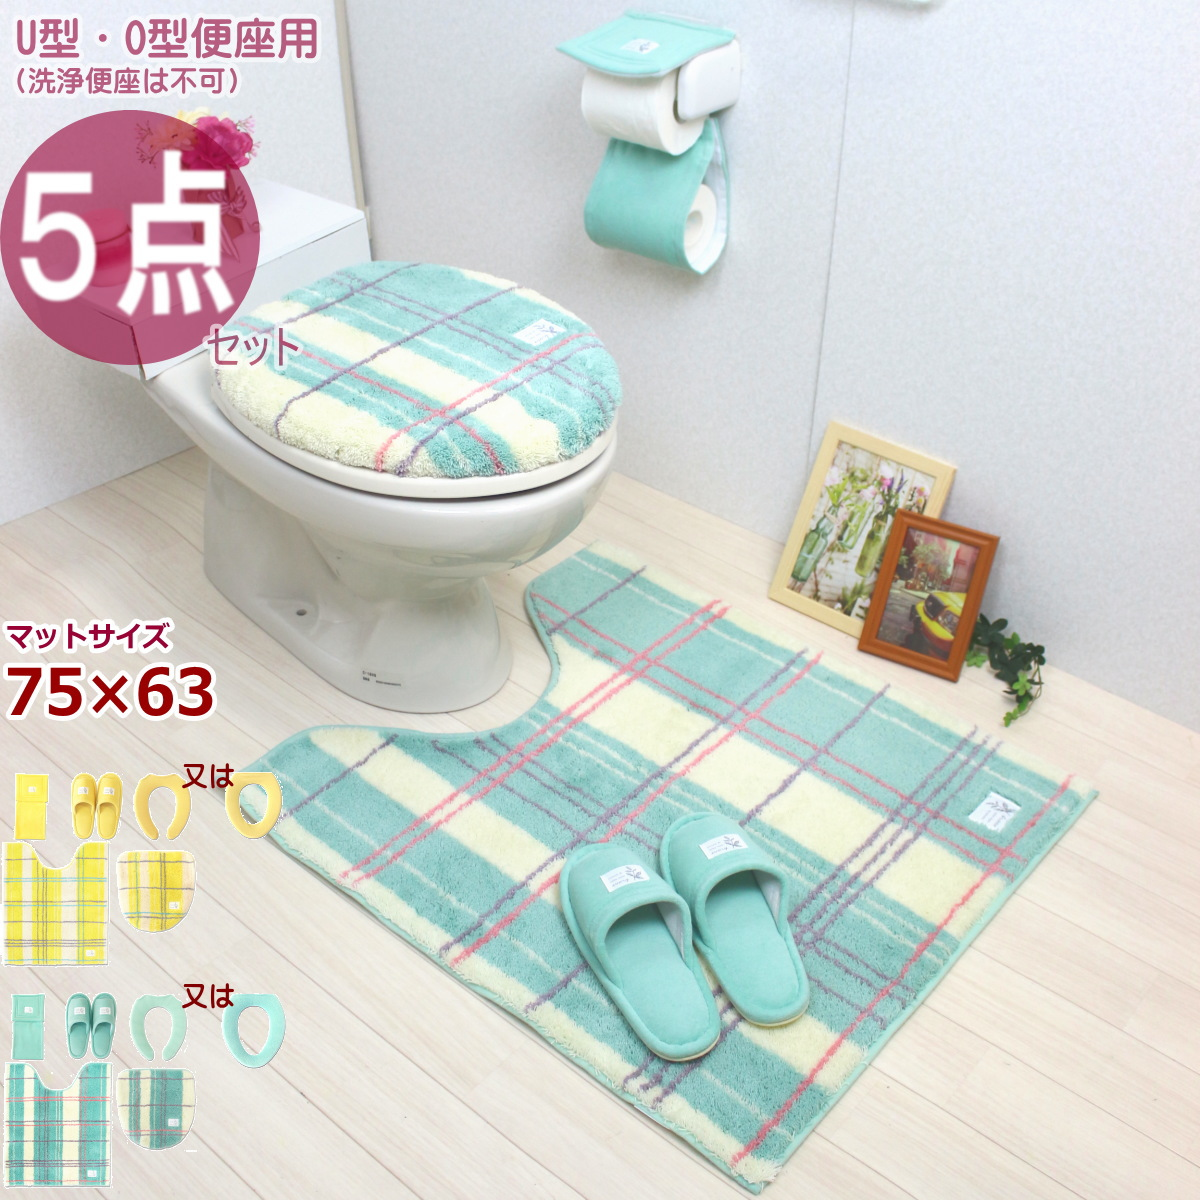 Superb Long Stylish North European Style Restroom Mat Set Five Points O Type Toilet Seat Cover U Type Toilet Seat Cover Natural Ear Length Pretty Theyellowbook Wood Chair Design Ideas Theyellowbookinfo